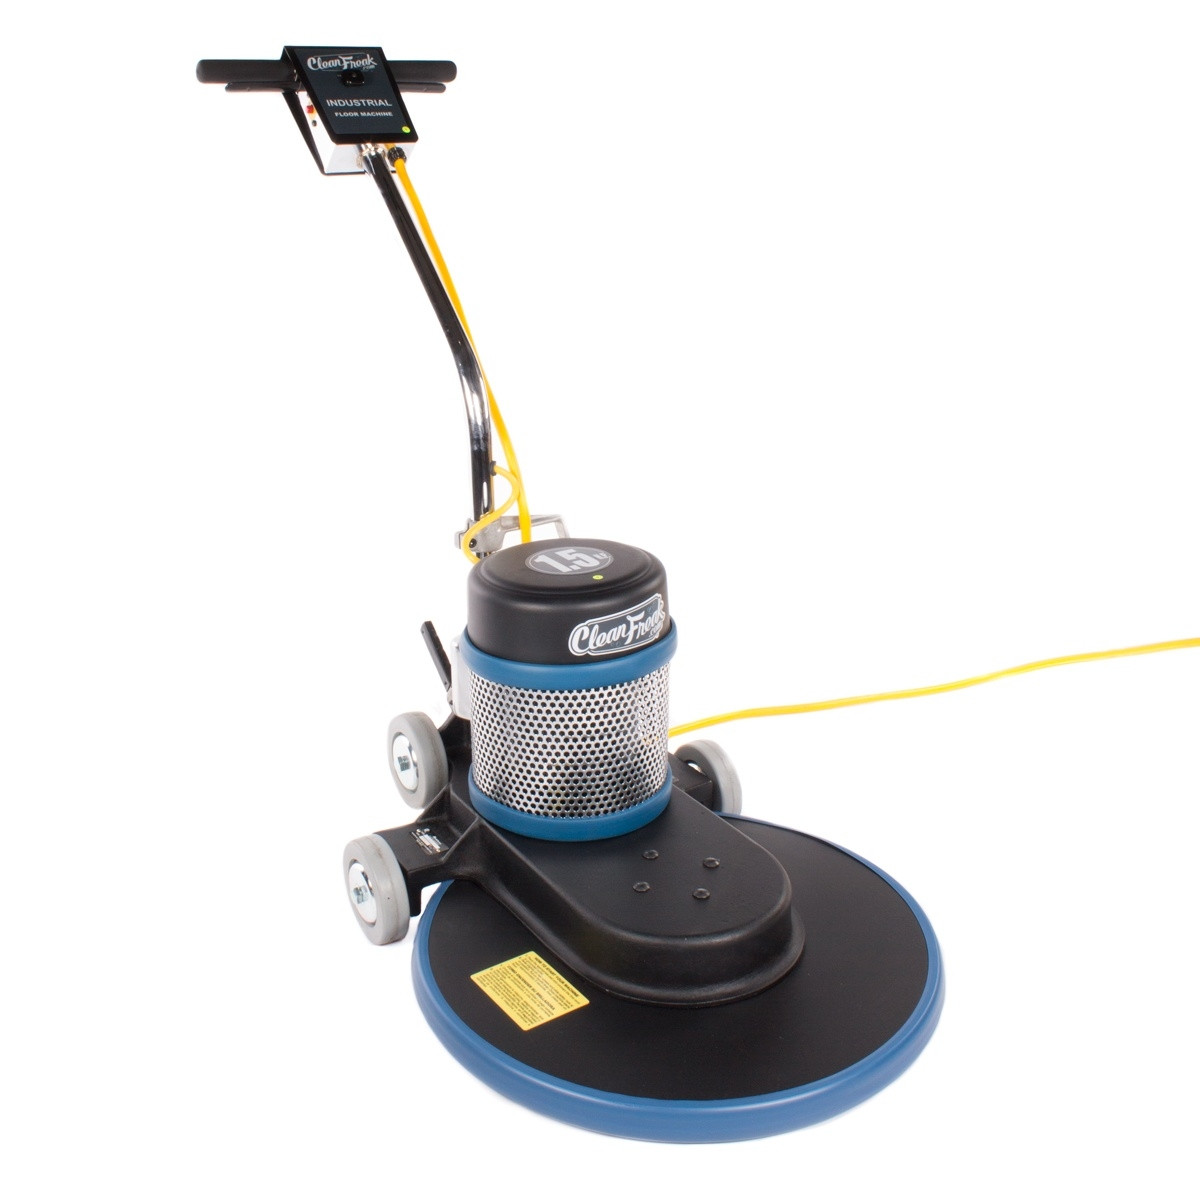 Cleanfreak 174 20 Inch Hard Floor High Speed Floor Polisher